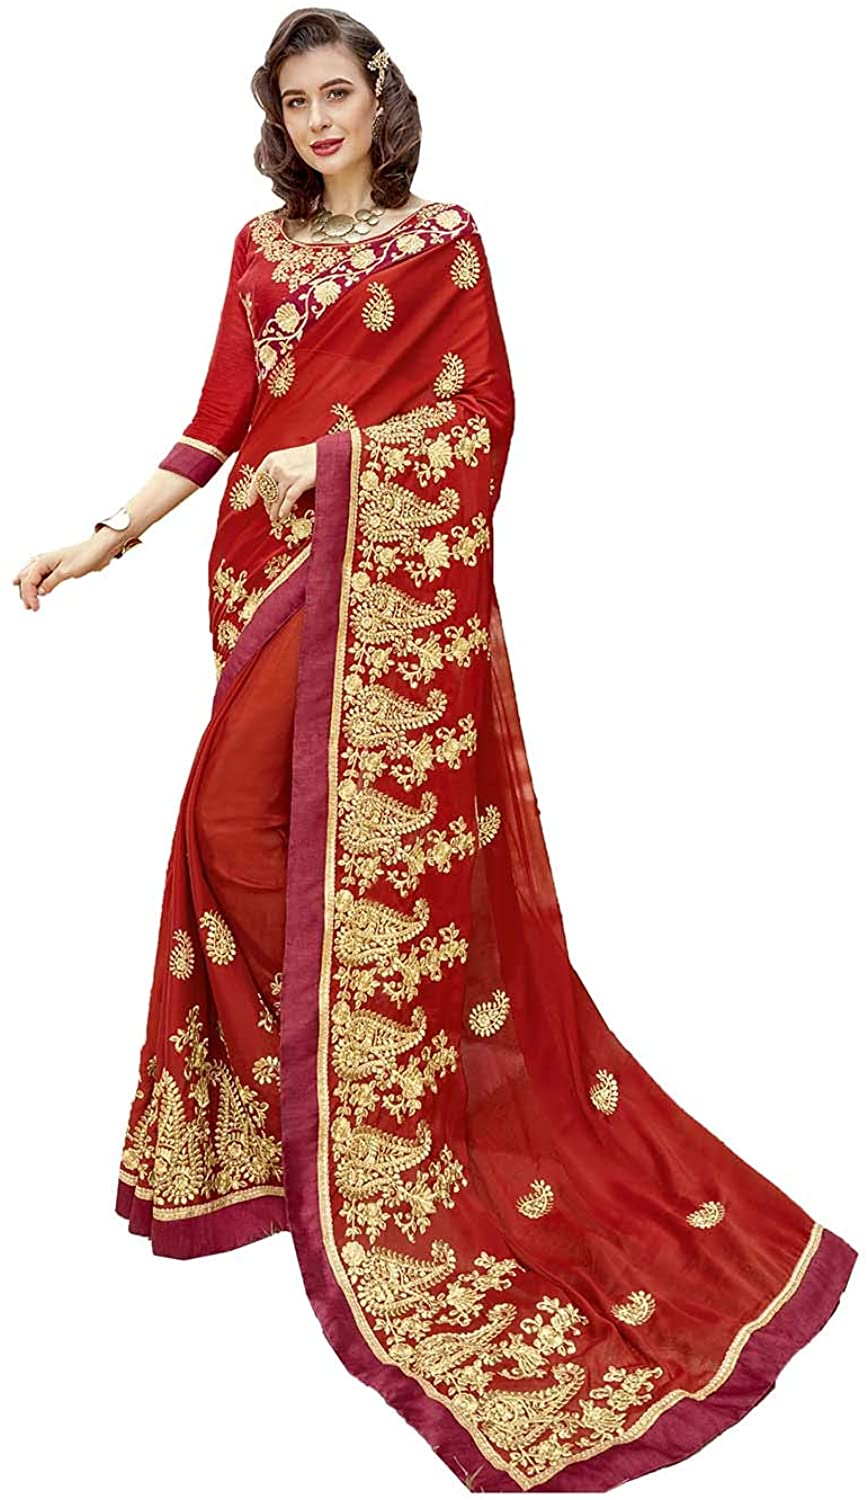 Saree for Women Bollywood Wedding Designer Georgette, Rangoli Sari with Unstitched Blouse. Red